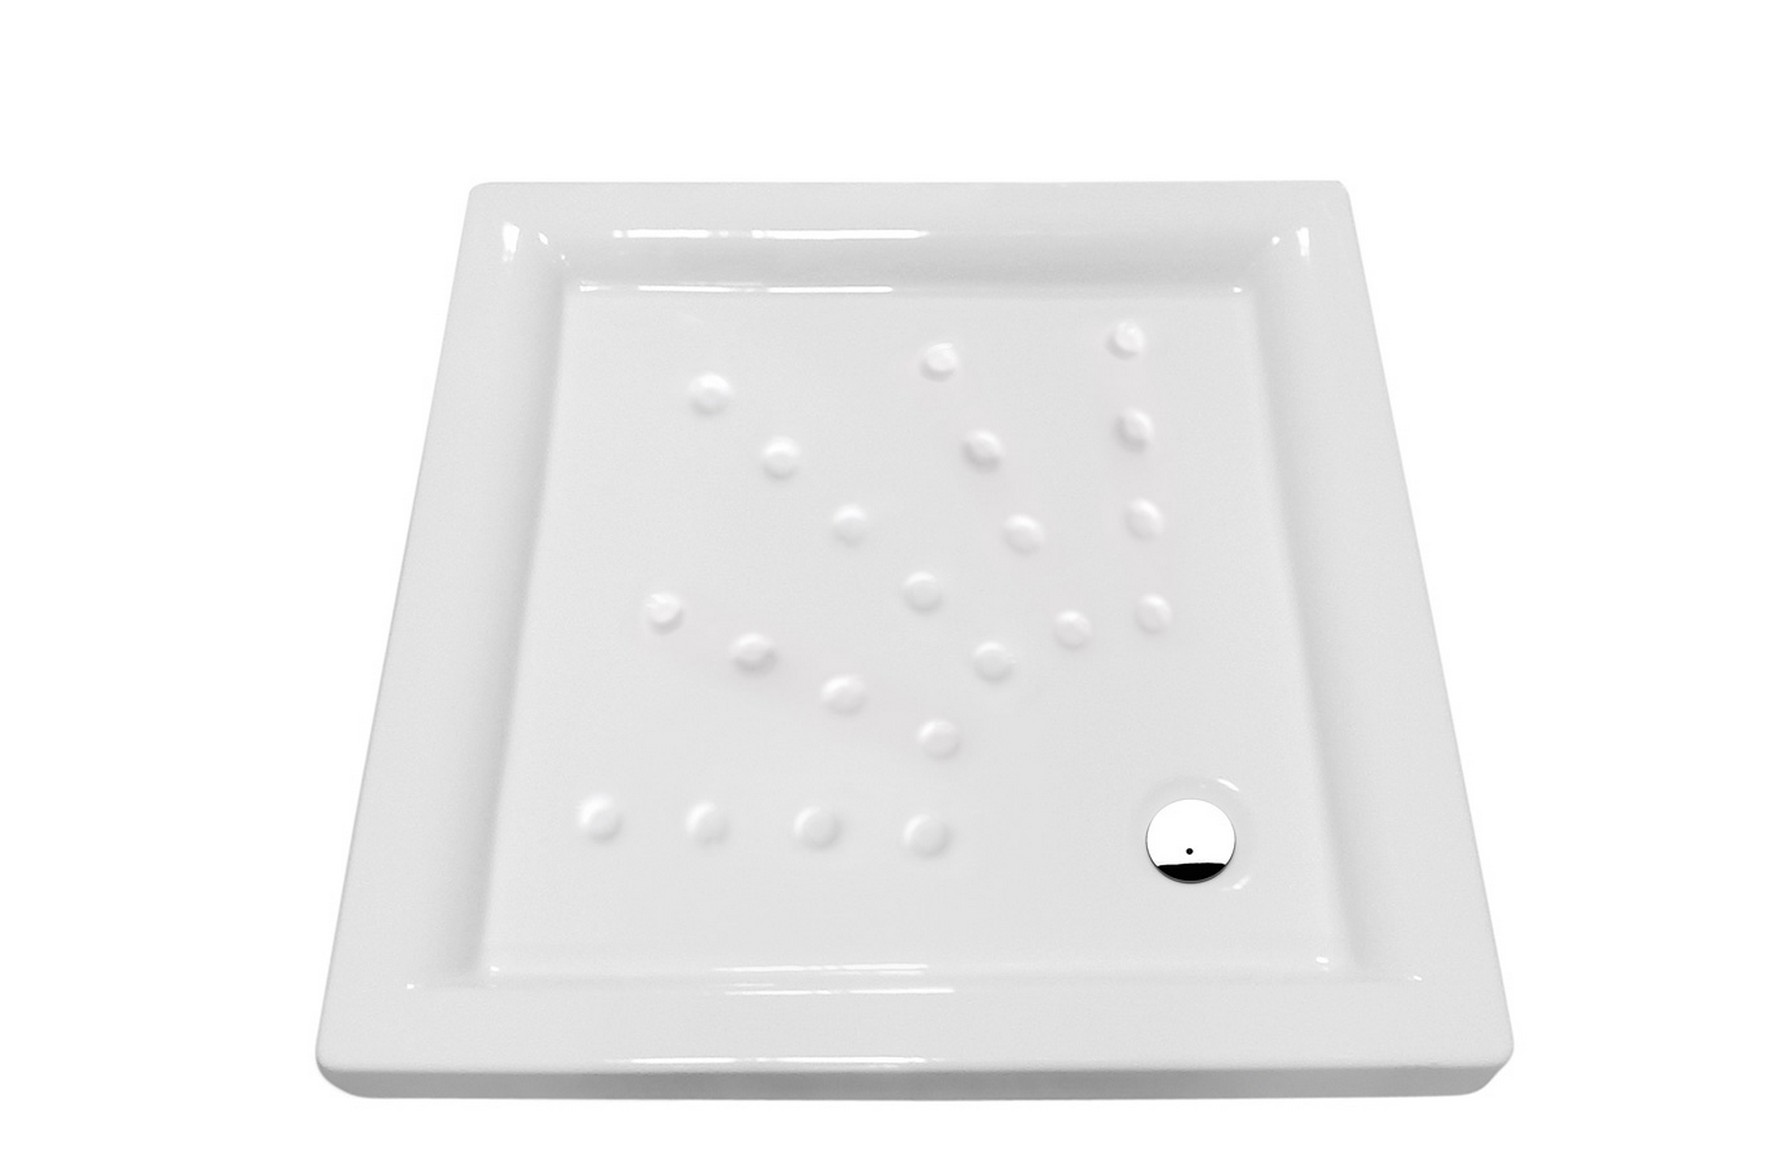 Square shower tray 80x80